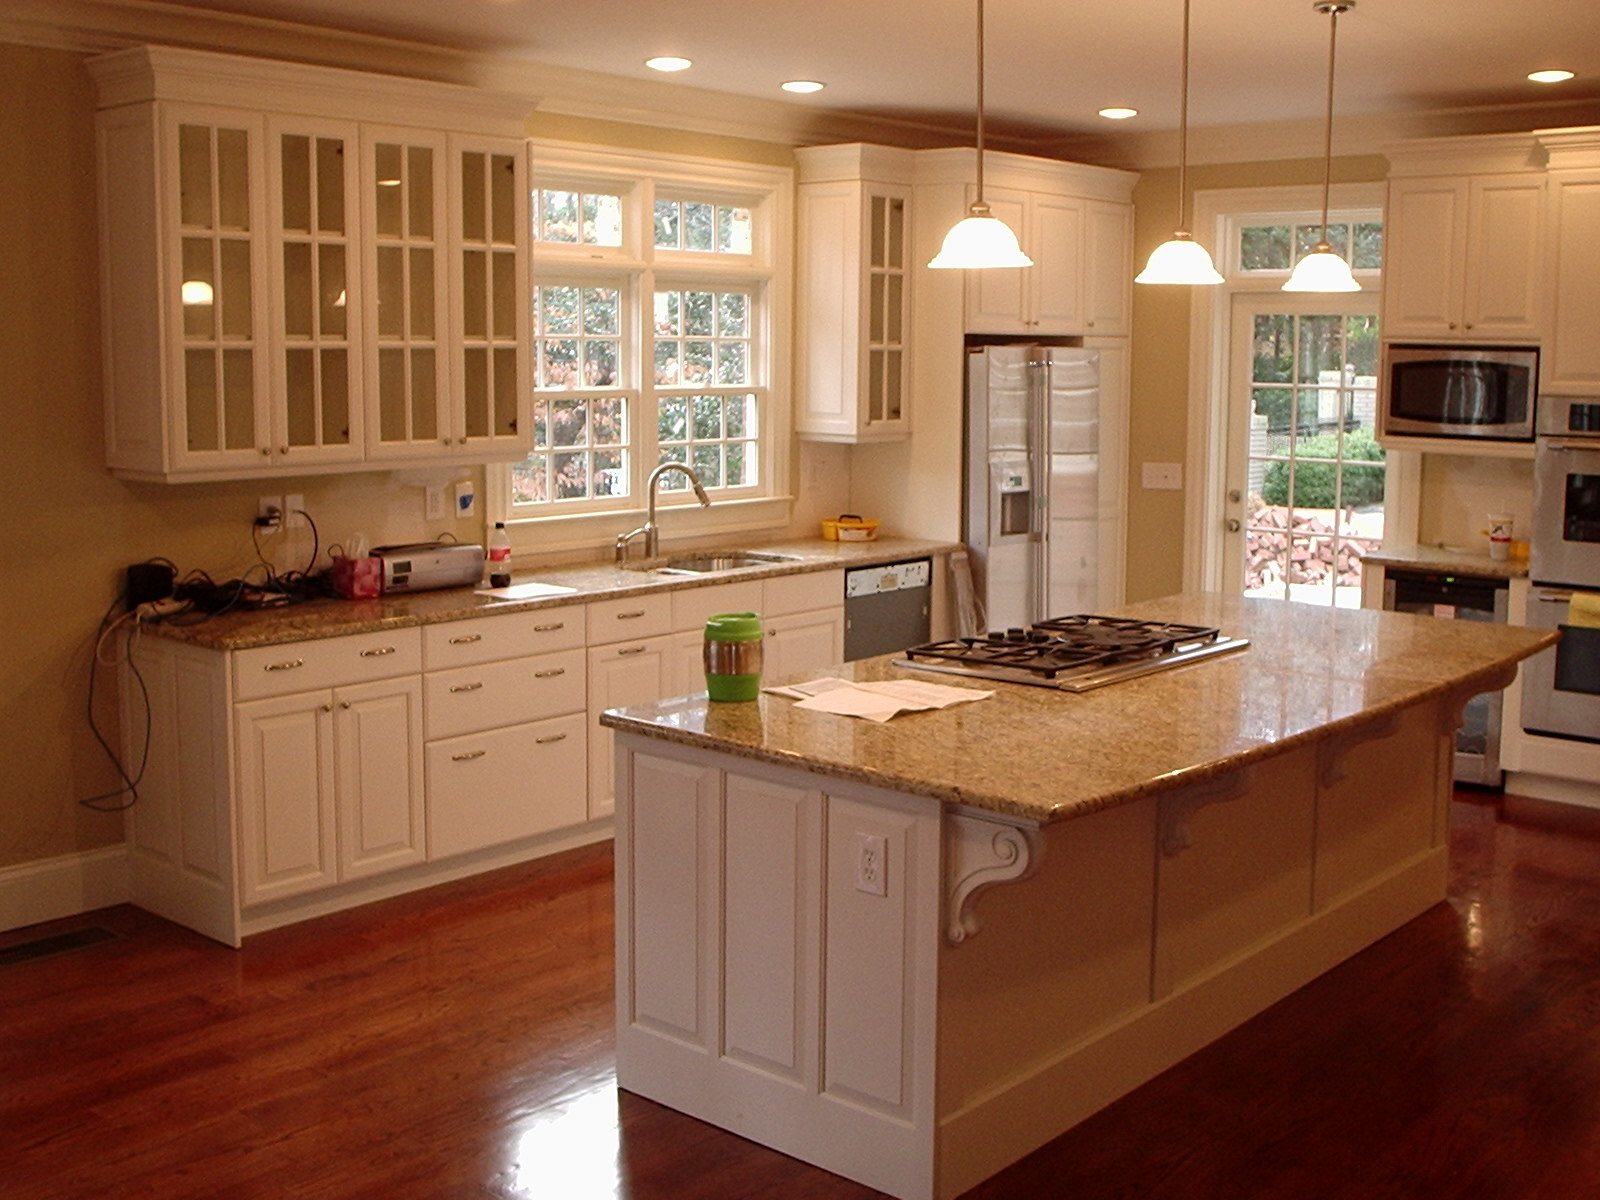 Pull out kitchen cabinet organizers Photo - 1